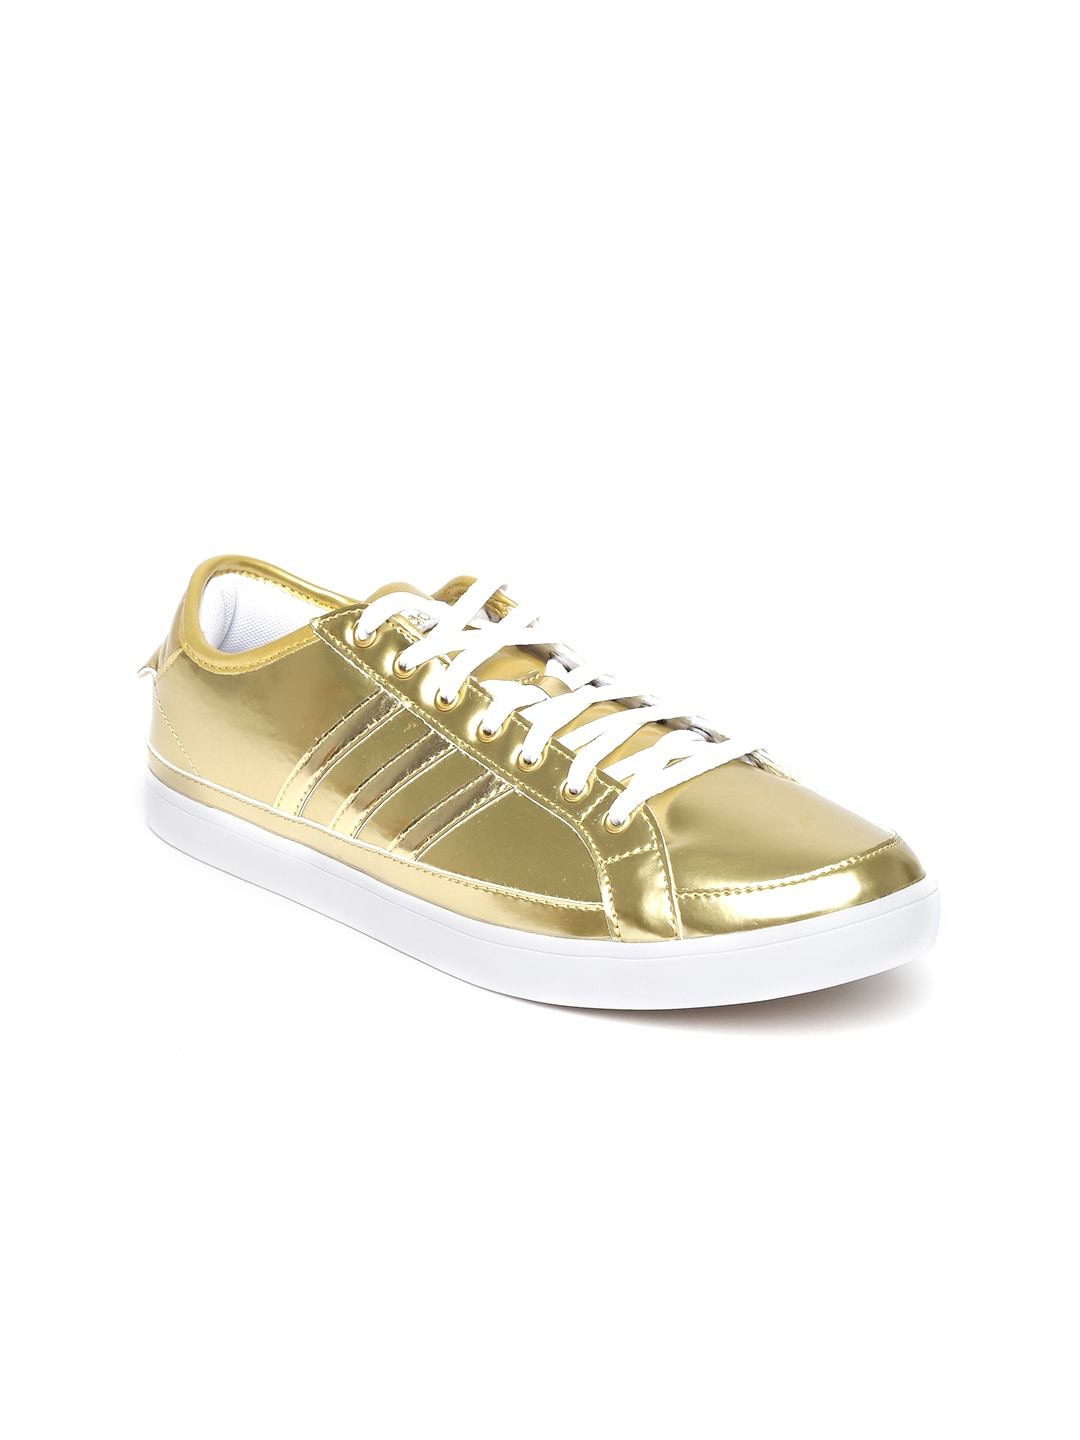 buy popular 36152 18865 Adidas Neo Women Gold Toned Park Lx Glossy Leather Sneakers